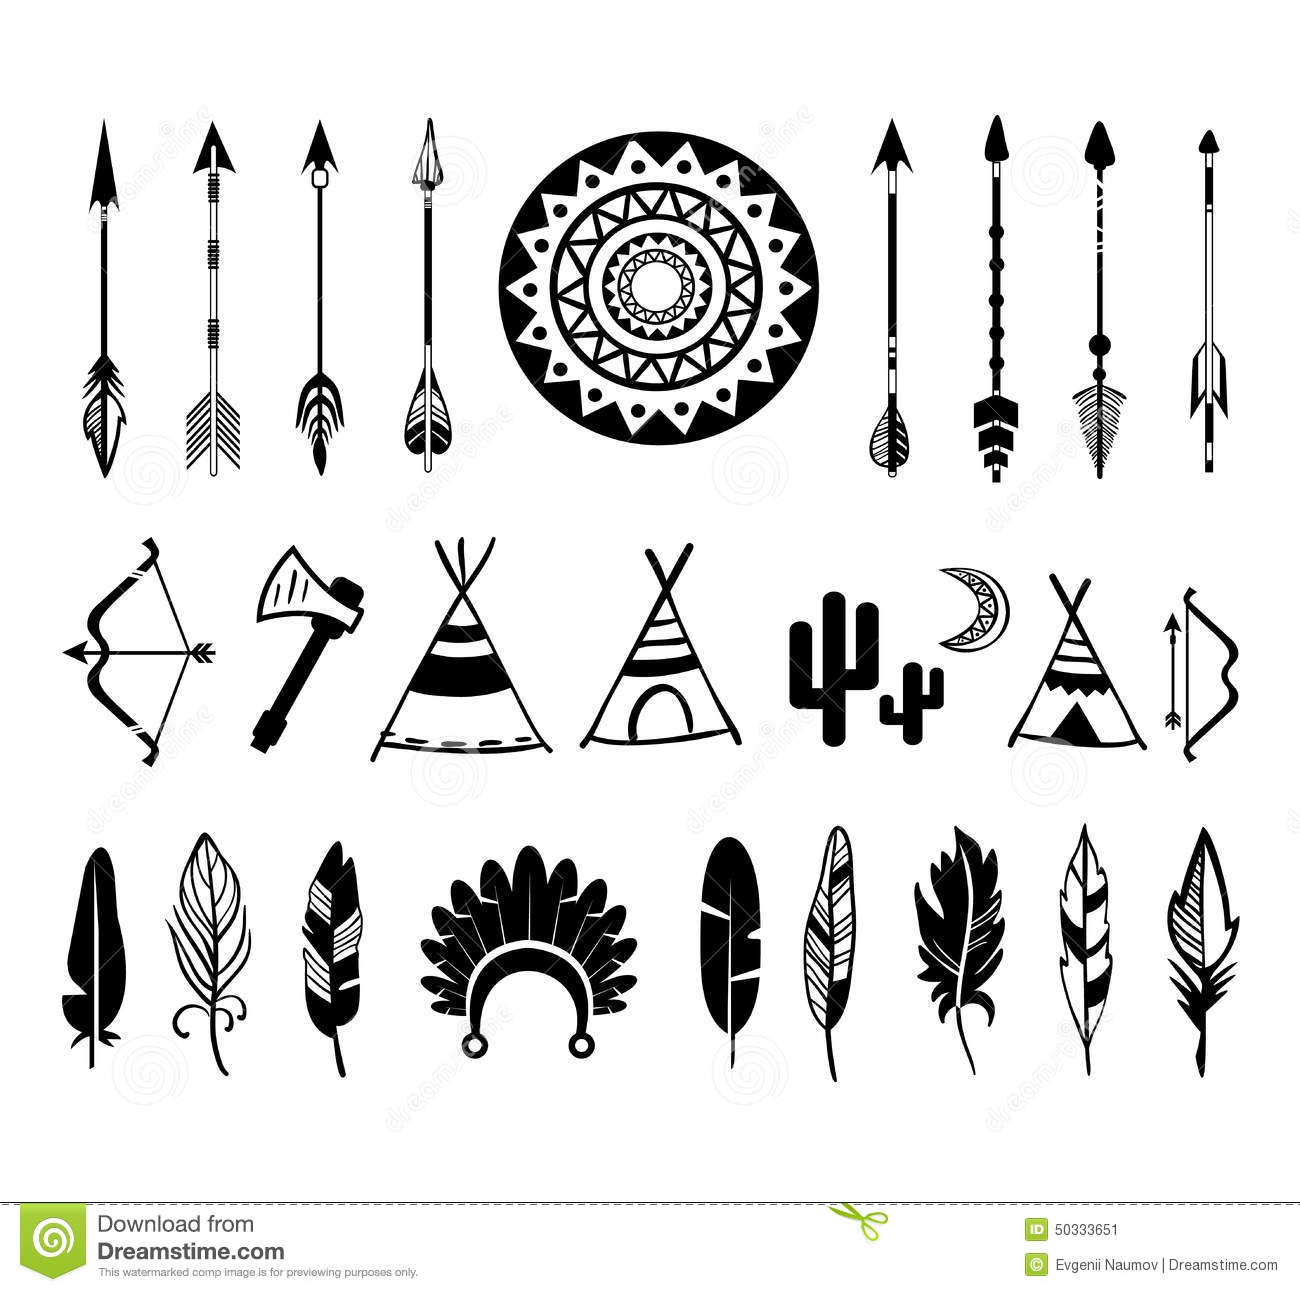 Black tribal arrow silhouette clipart vector royalty free library Vector Silhouettes Of The Bow And Arrow Stock Vector - Image: 50333651 vector royalty free library